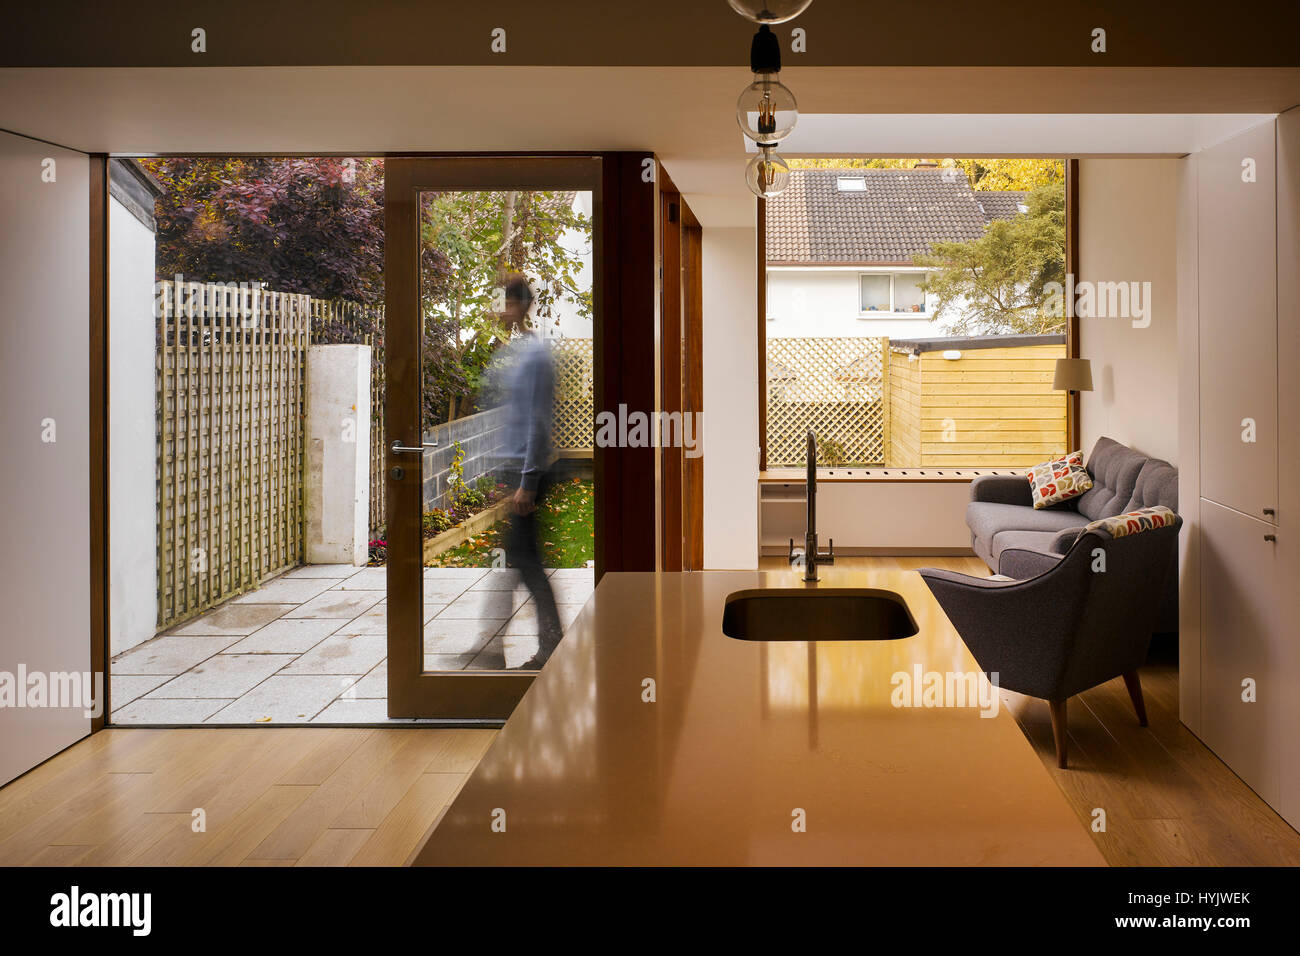 Interior view of living area showing counter, sliding door open and figure. Extension to House, Stillorgan, Dublin, - Stock Image